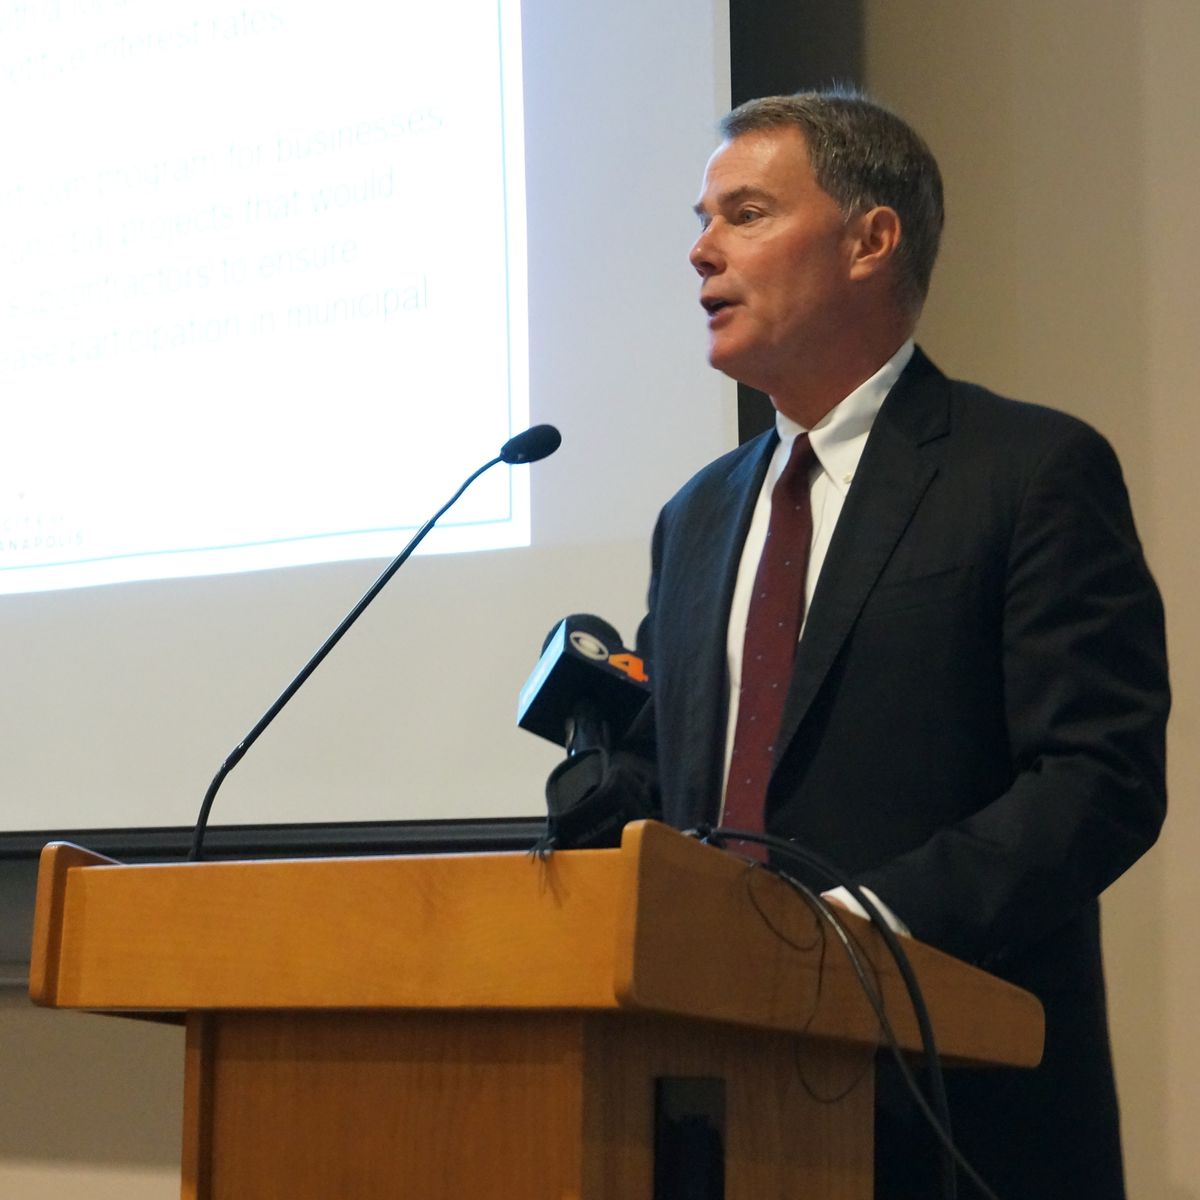 Joe Hogsett at a forum hosted by Concerned Clergy and the Baptist Ministers Alliance.